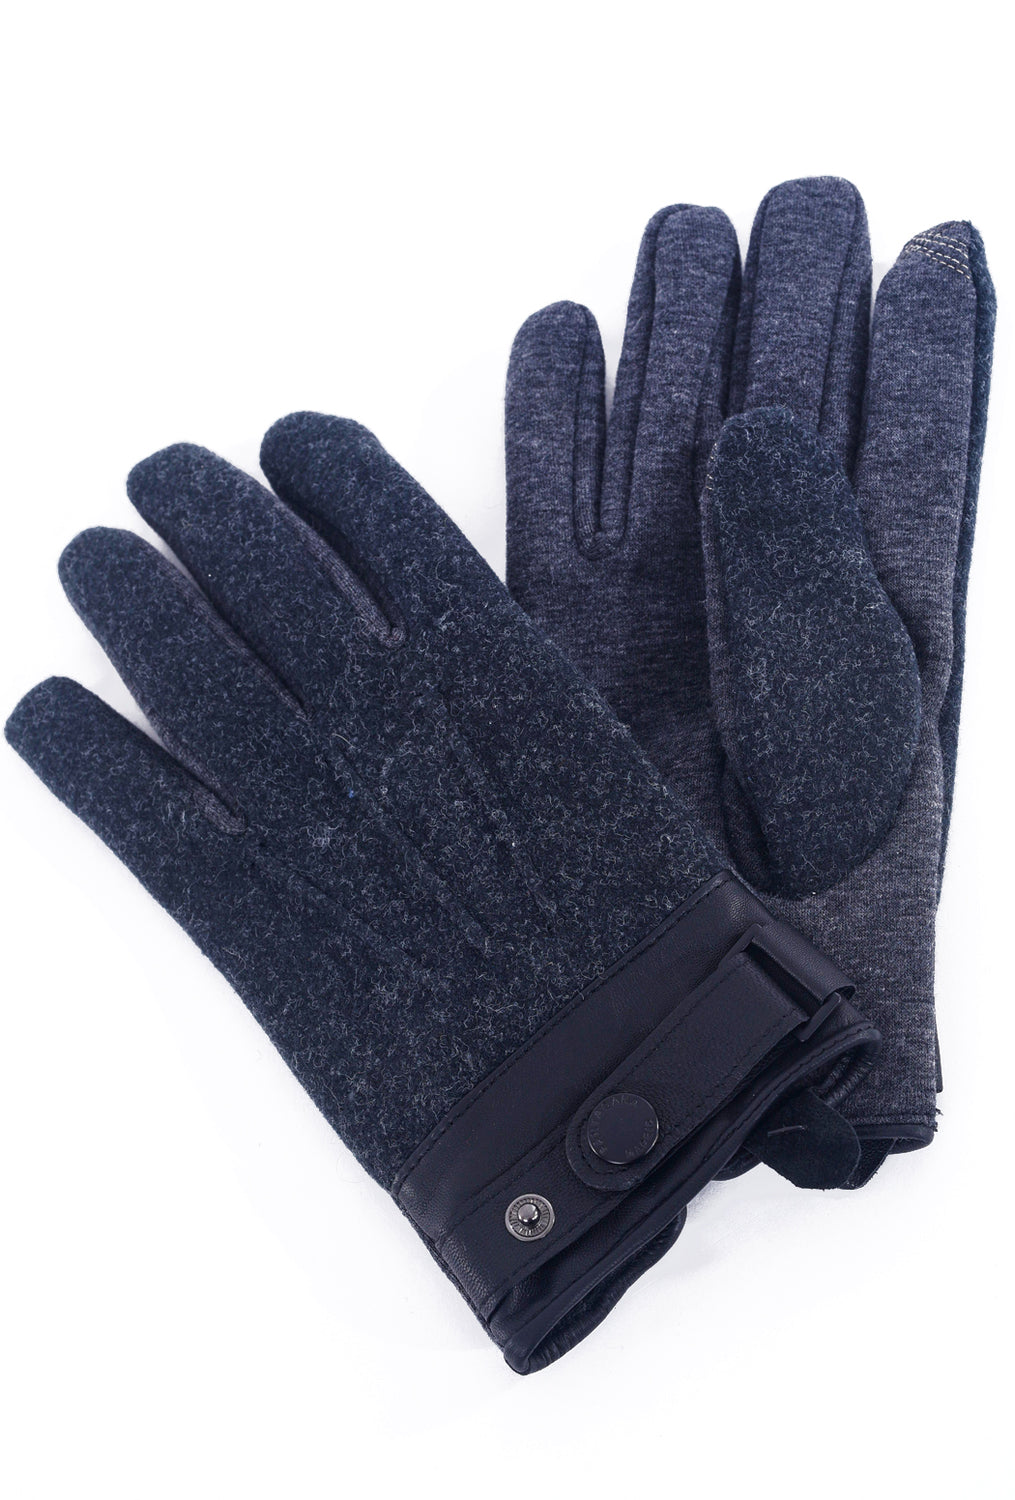 Santacana Madrid Men's Leather-Trim Tech Gloves, Charcoal